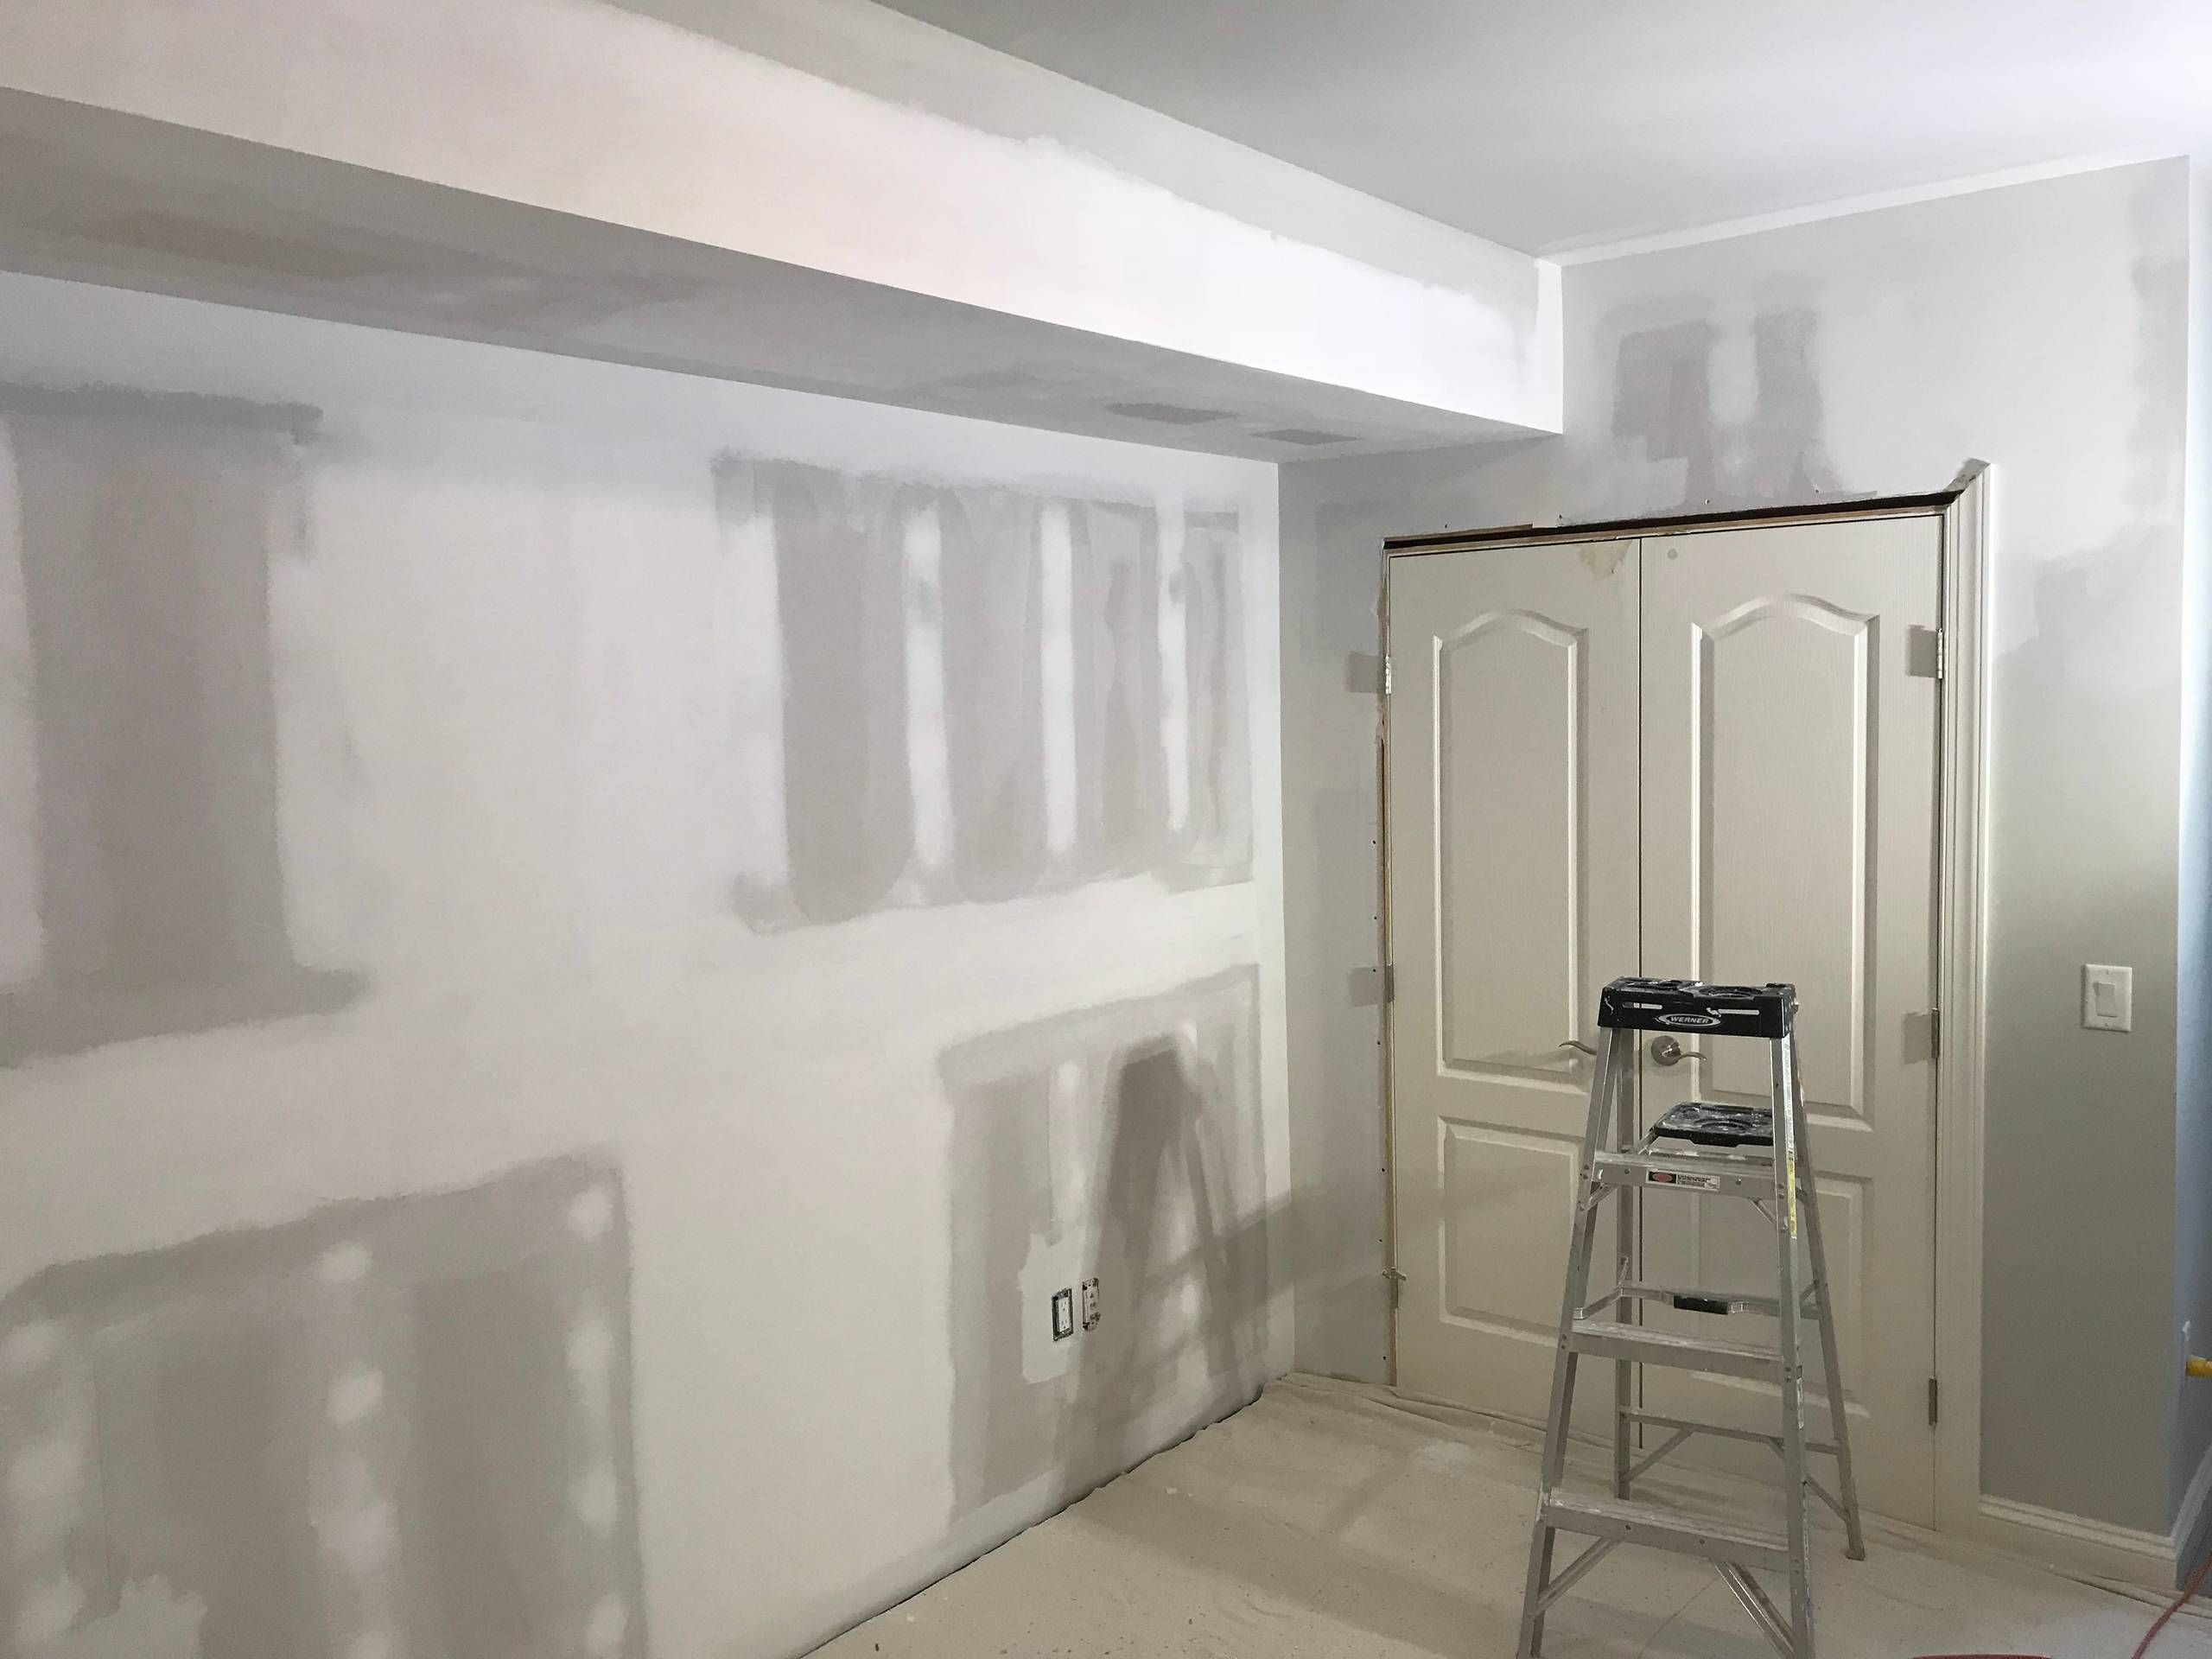 Riva Water Damage Repair and Painting Project